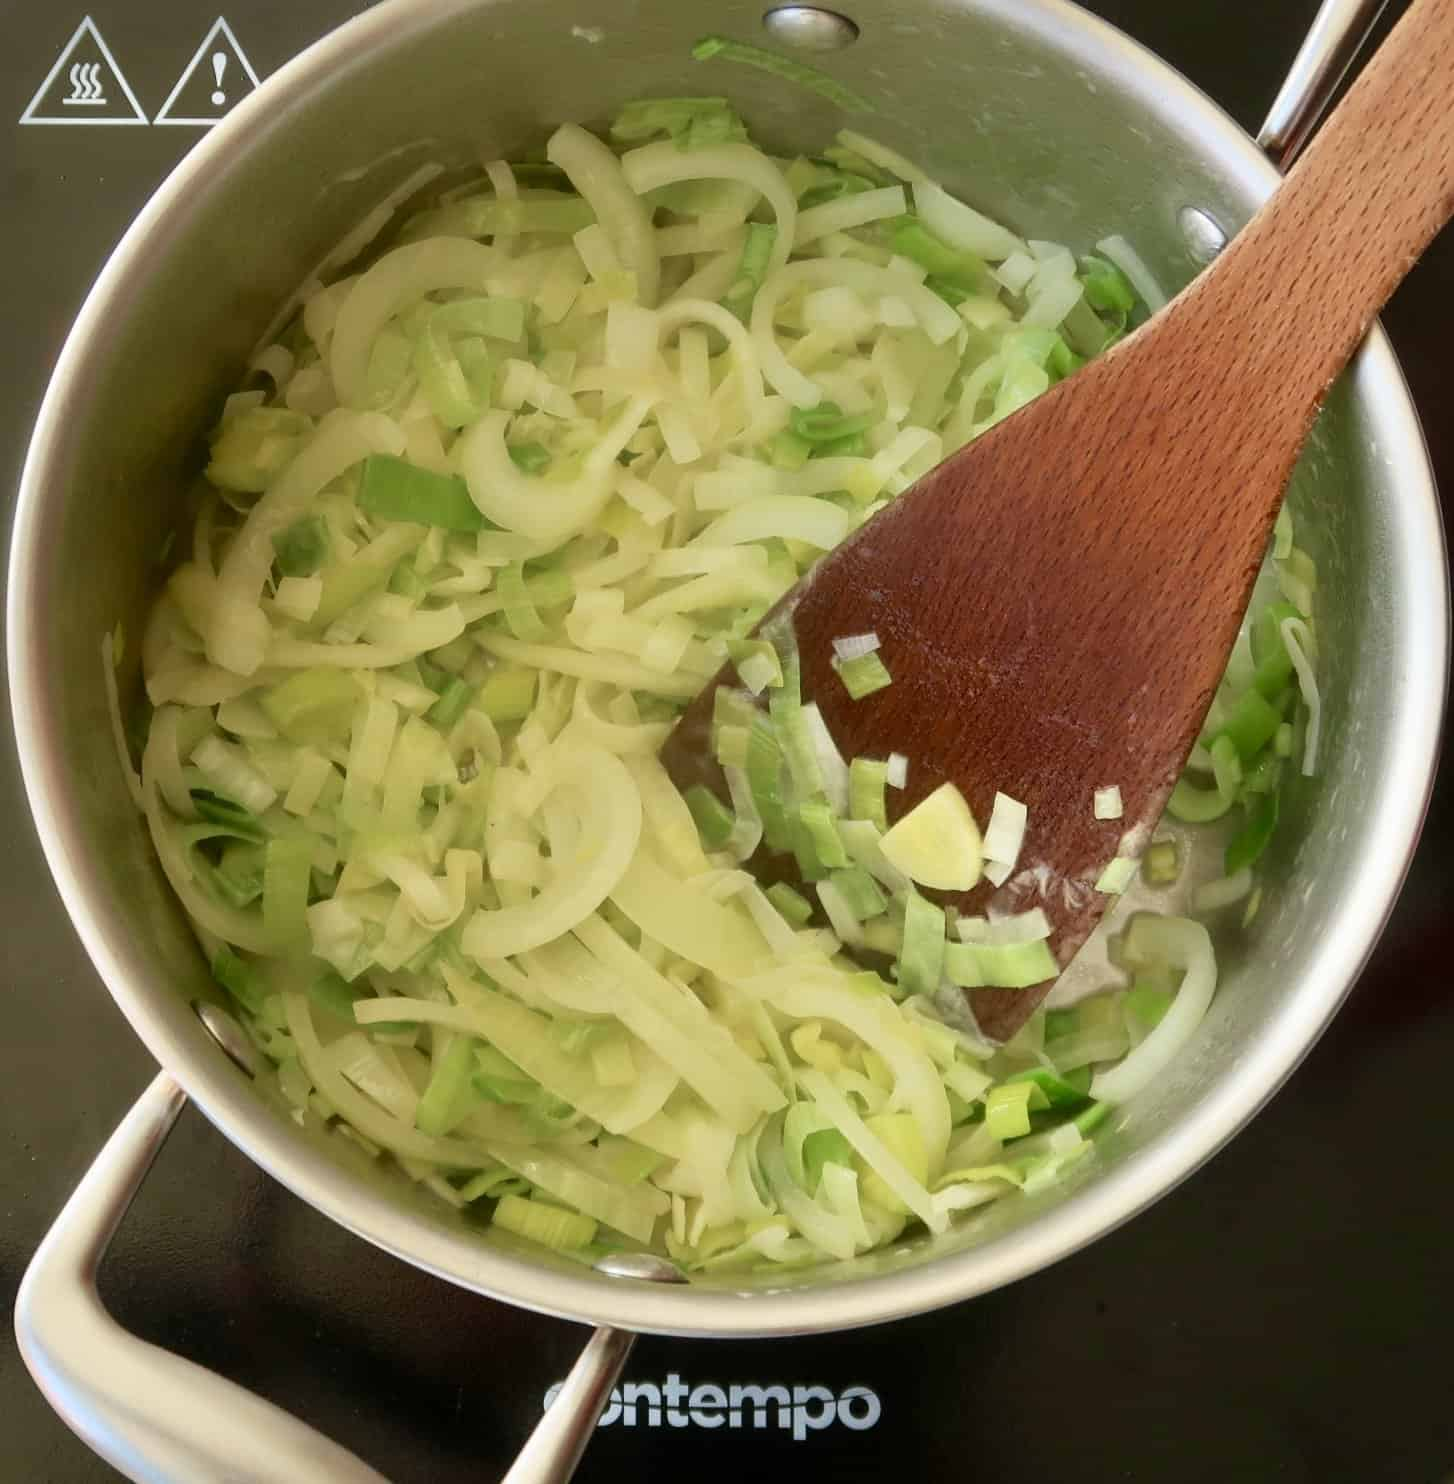 leeks and onions in a silver saucepan with a wooden spoon